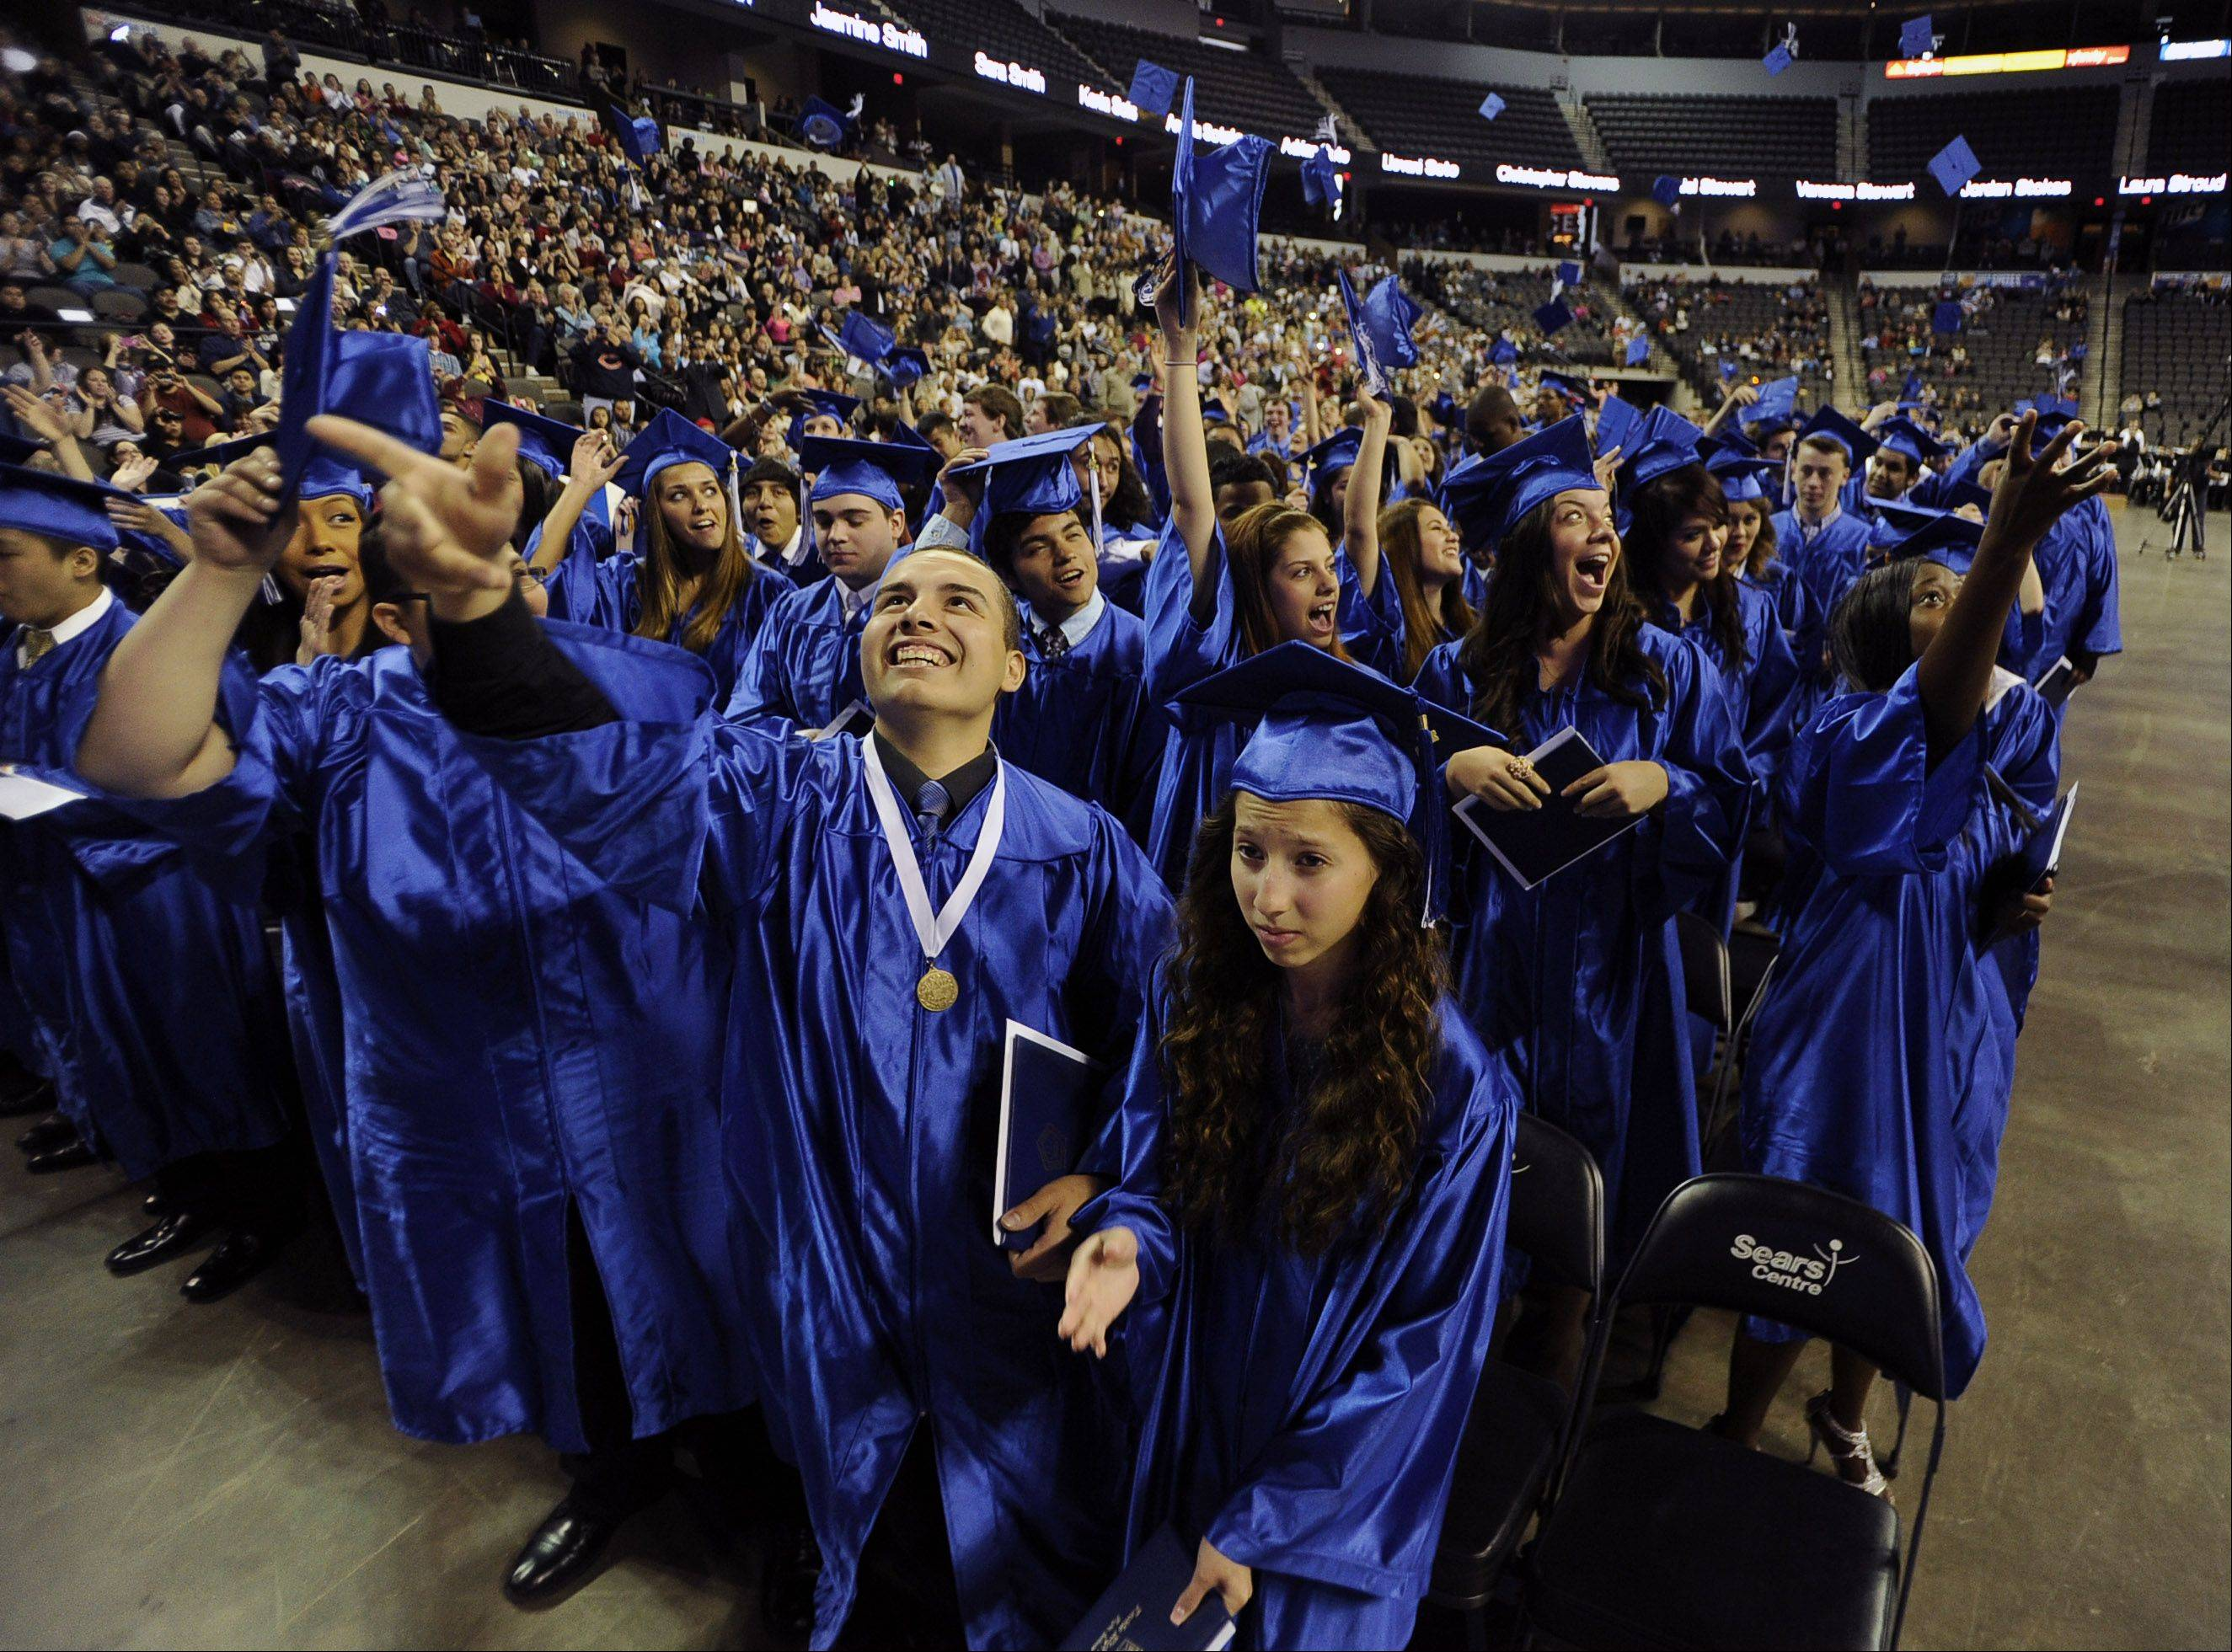 The class of 2013 Larkin High School graduates celebrate by the famous cap toss at the end of the commencement at the Sears Centre in Hoffman Estates on Saturday.